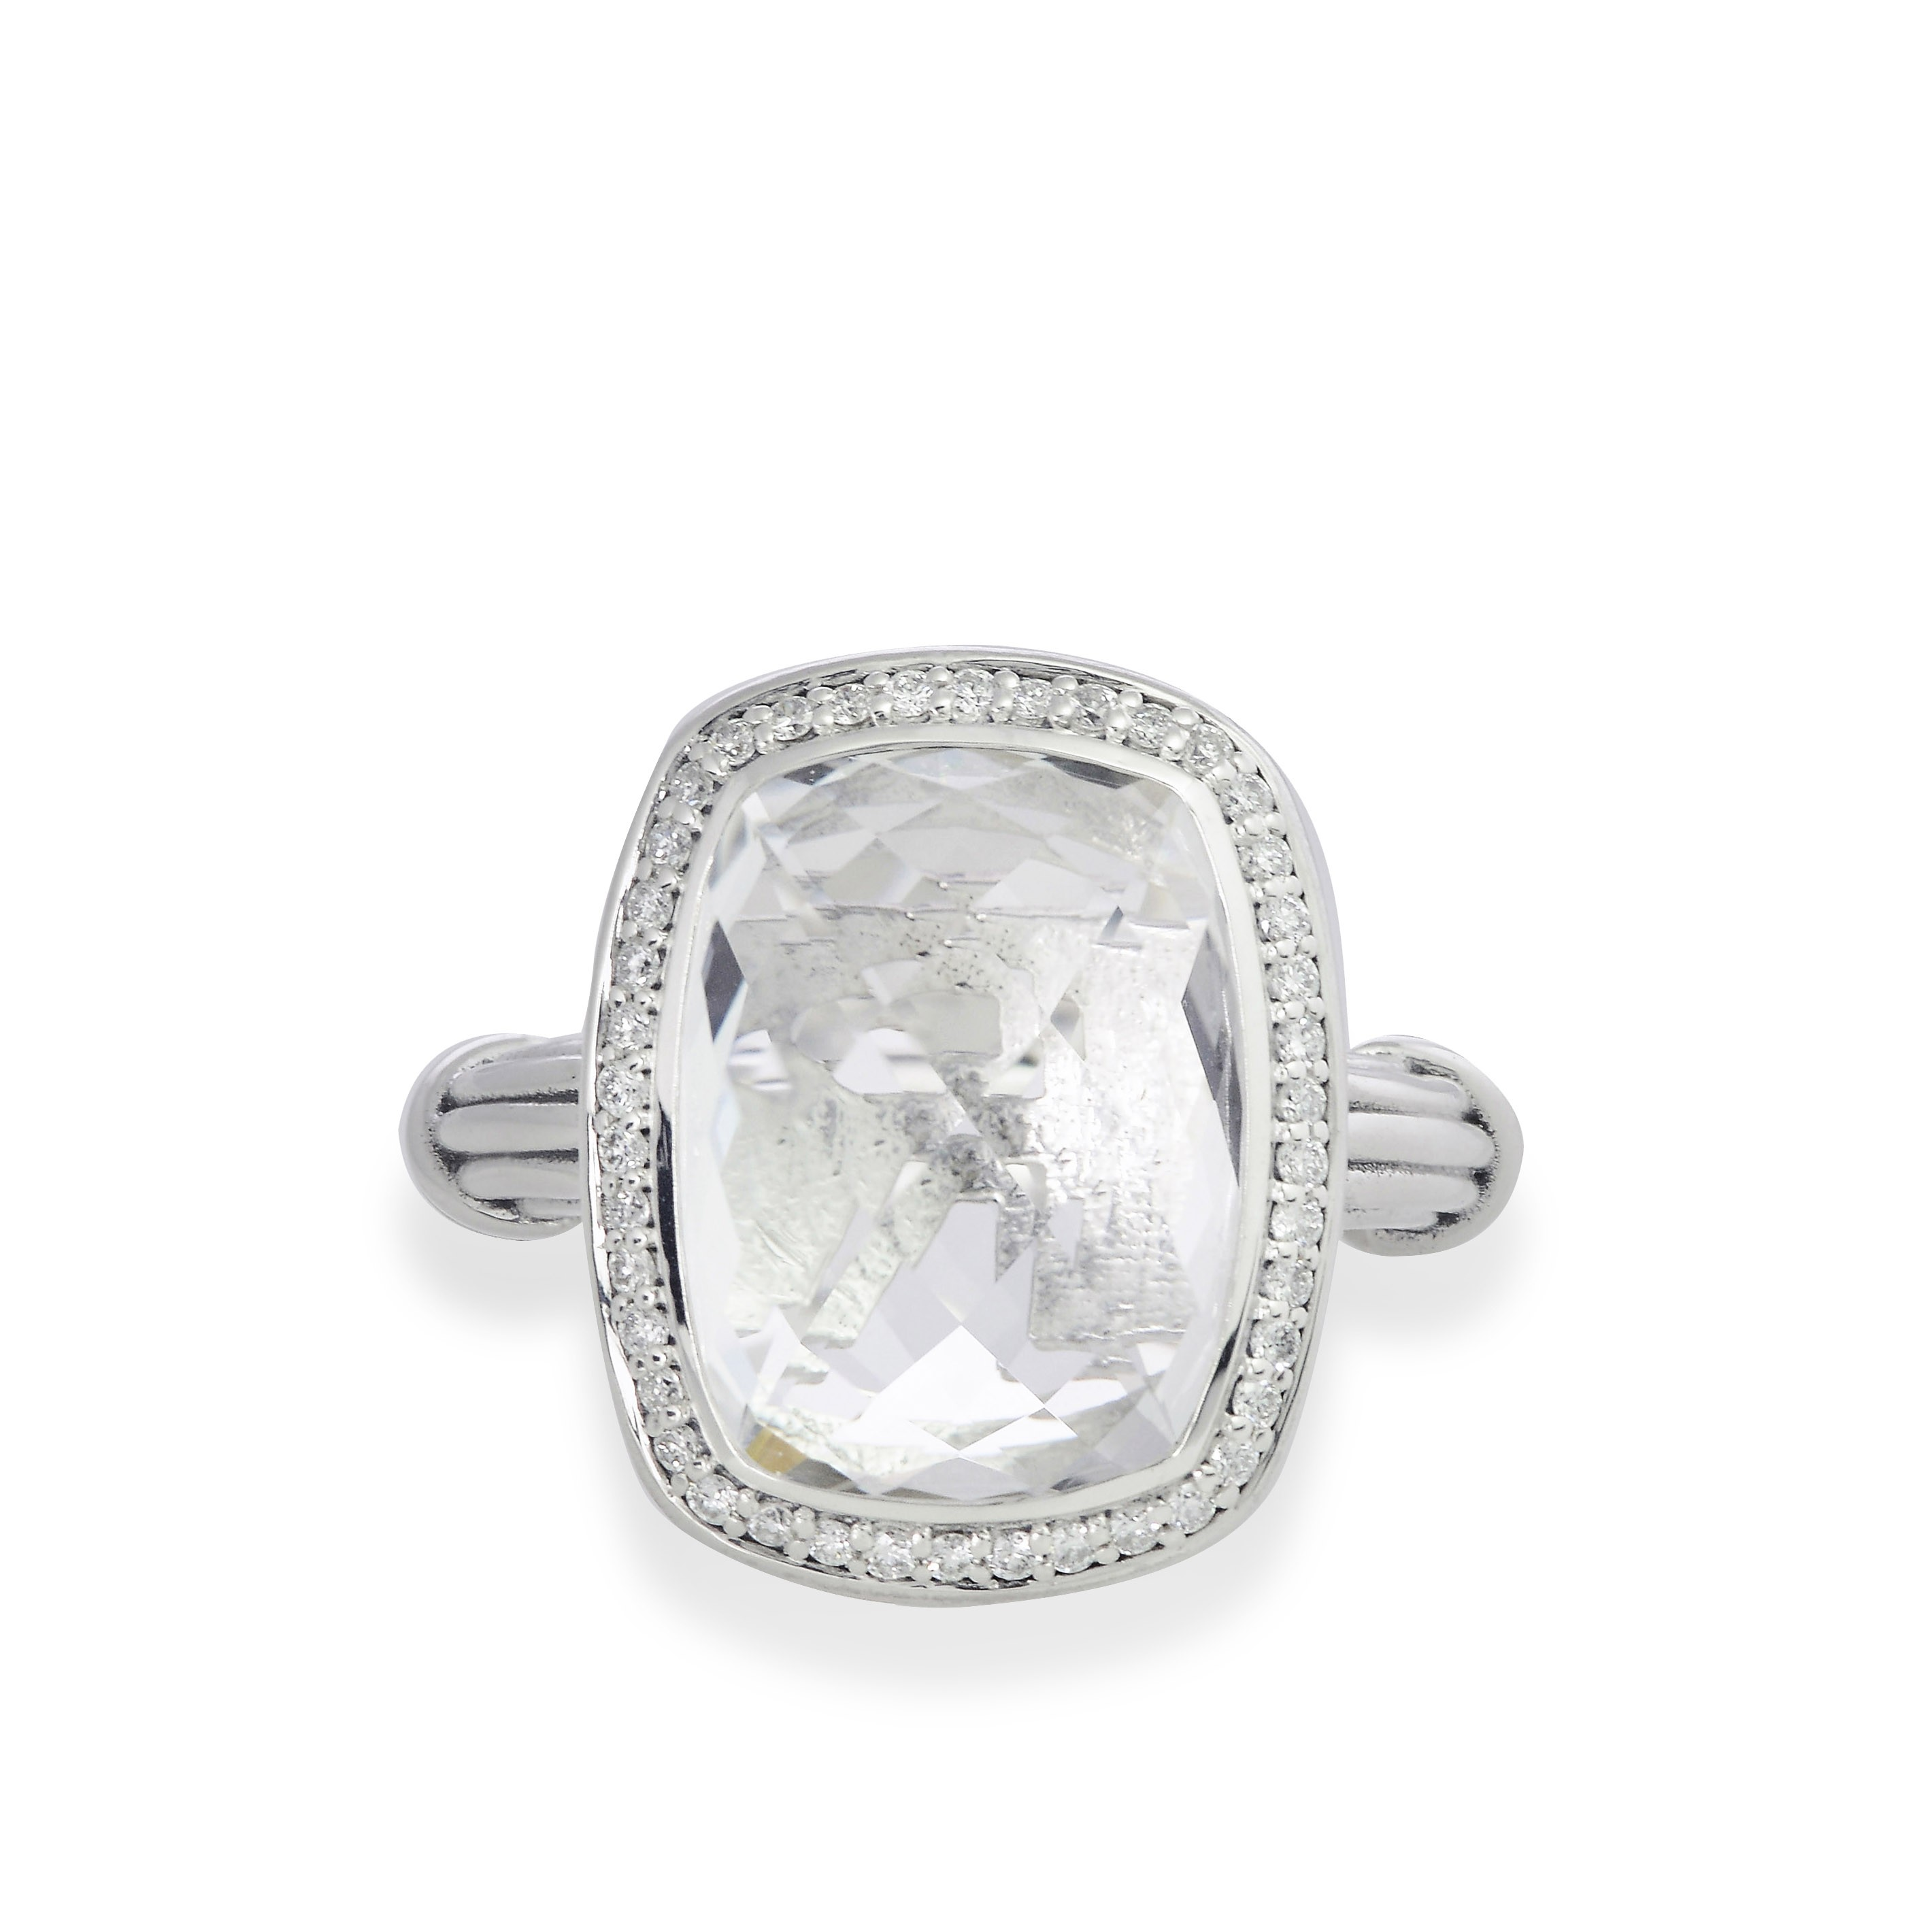 Fantasies Rock Crystal Halo Ring in sterling silver with diamonds